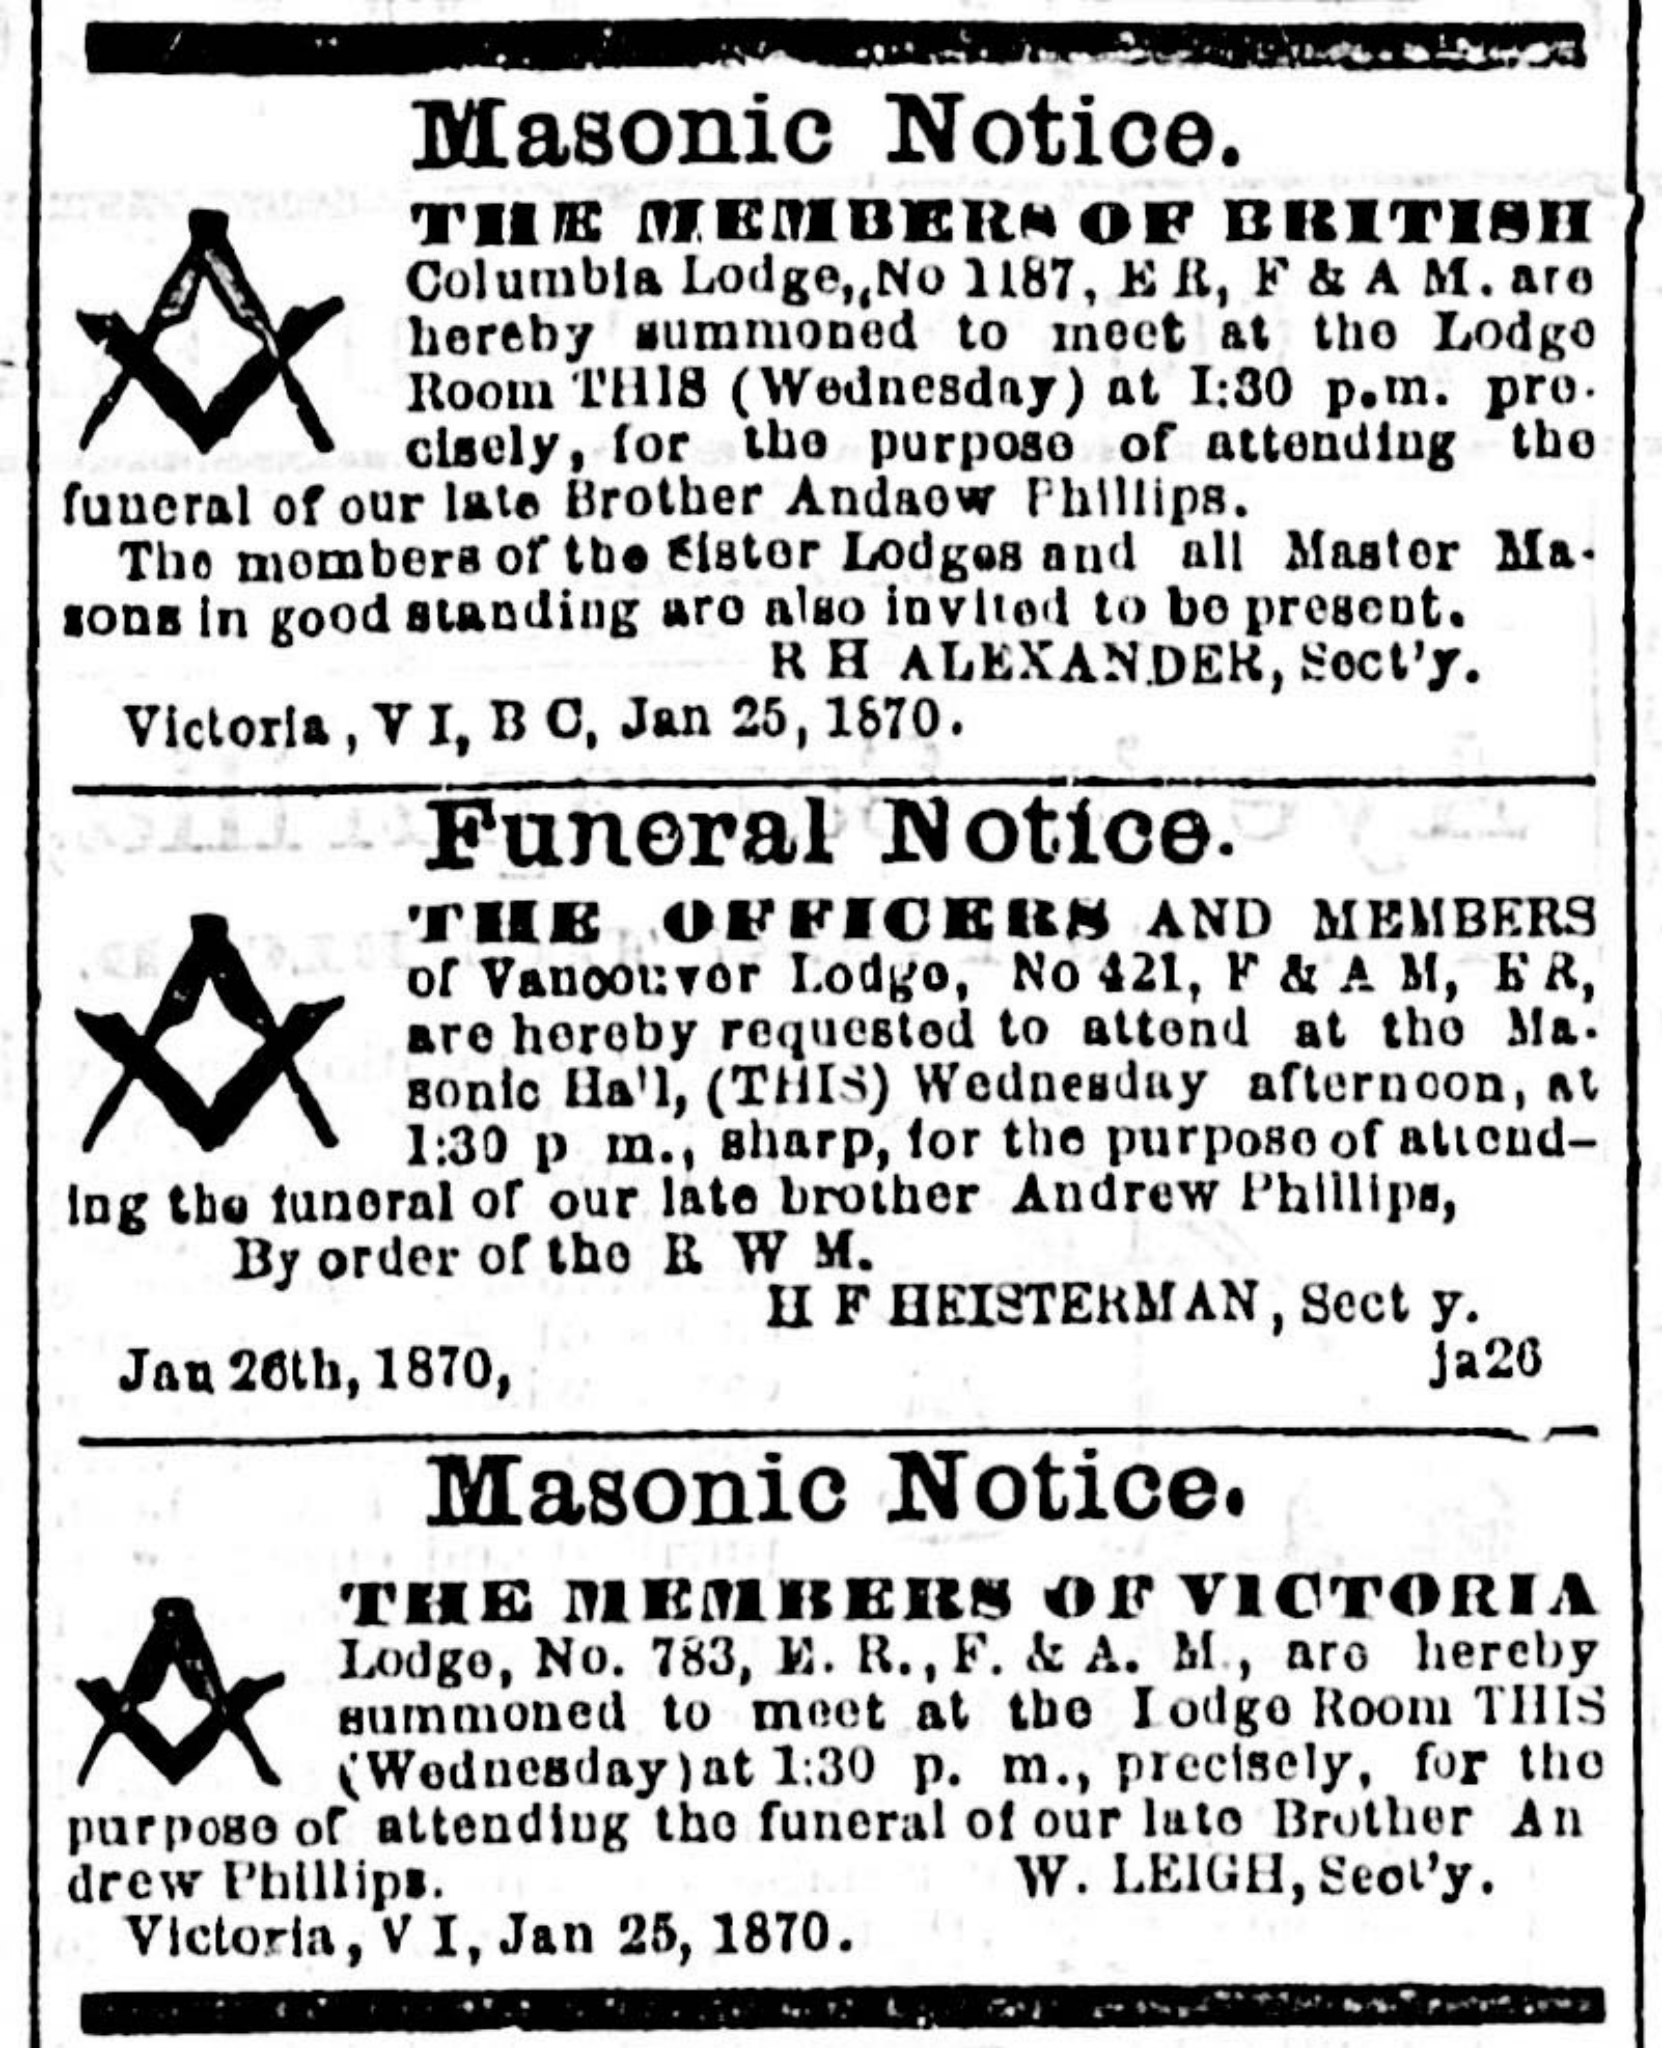 The Masonic Funeral Notices for Andrew Phillips in the British Daily Colonist, 26 January 1870